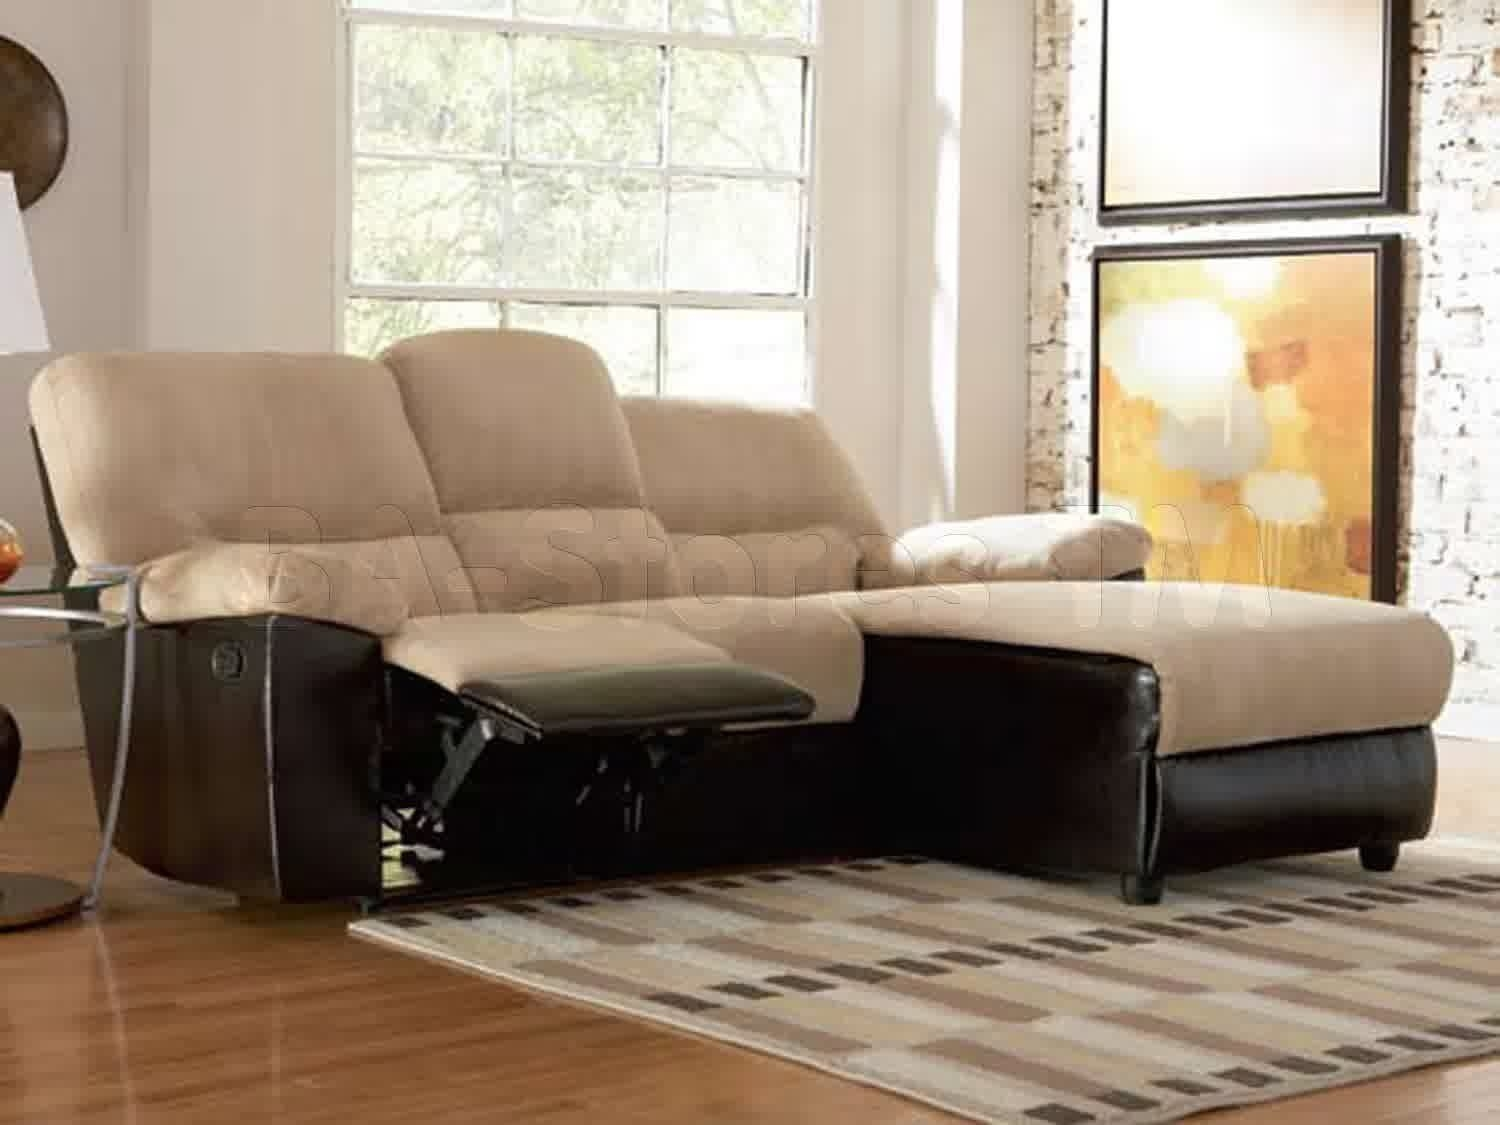 Apartment size sofas image of apartment size sofas and for Apartment size leather sofa